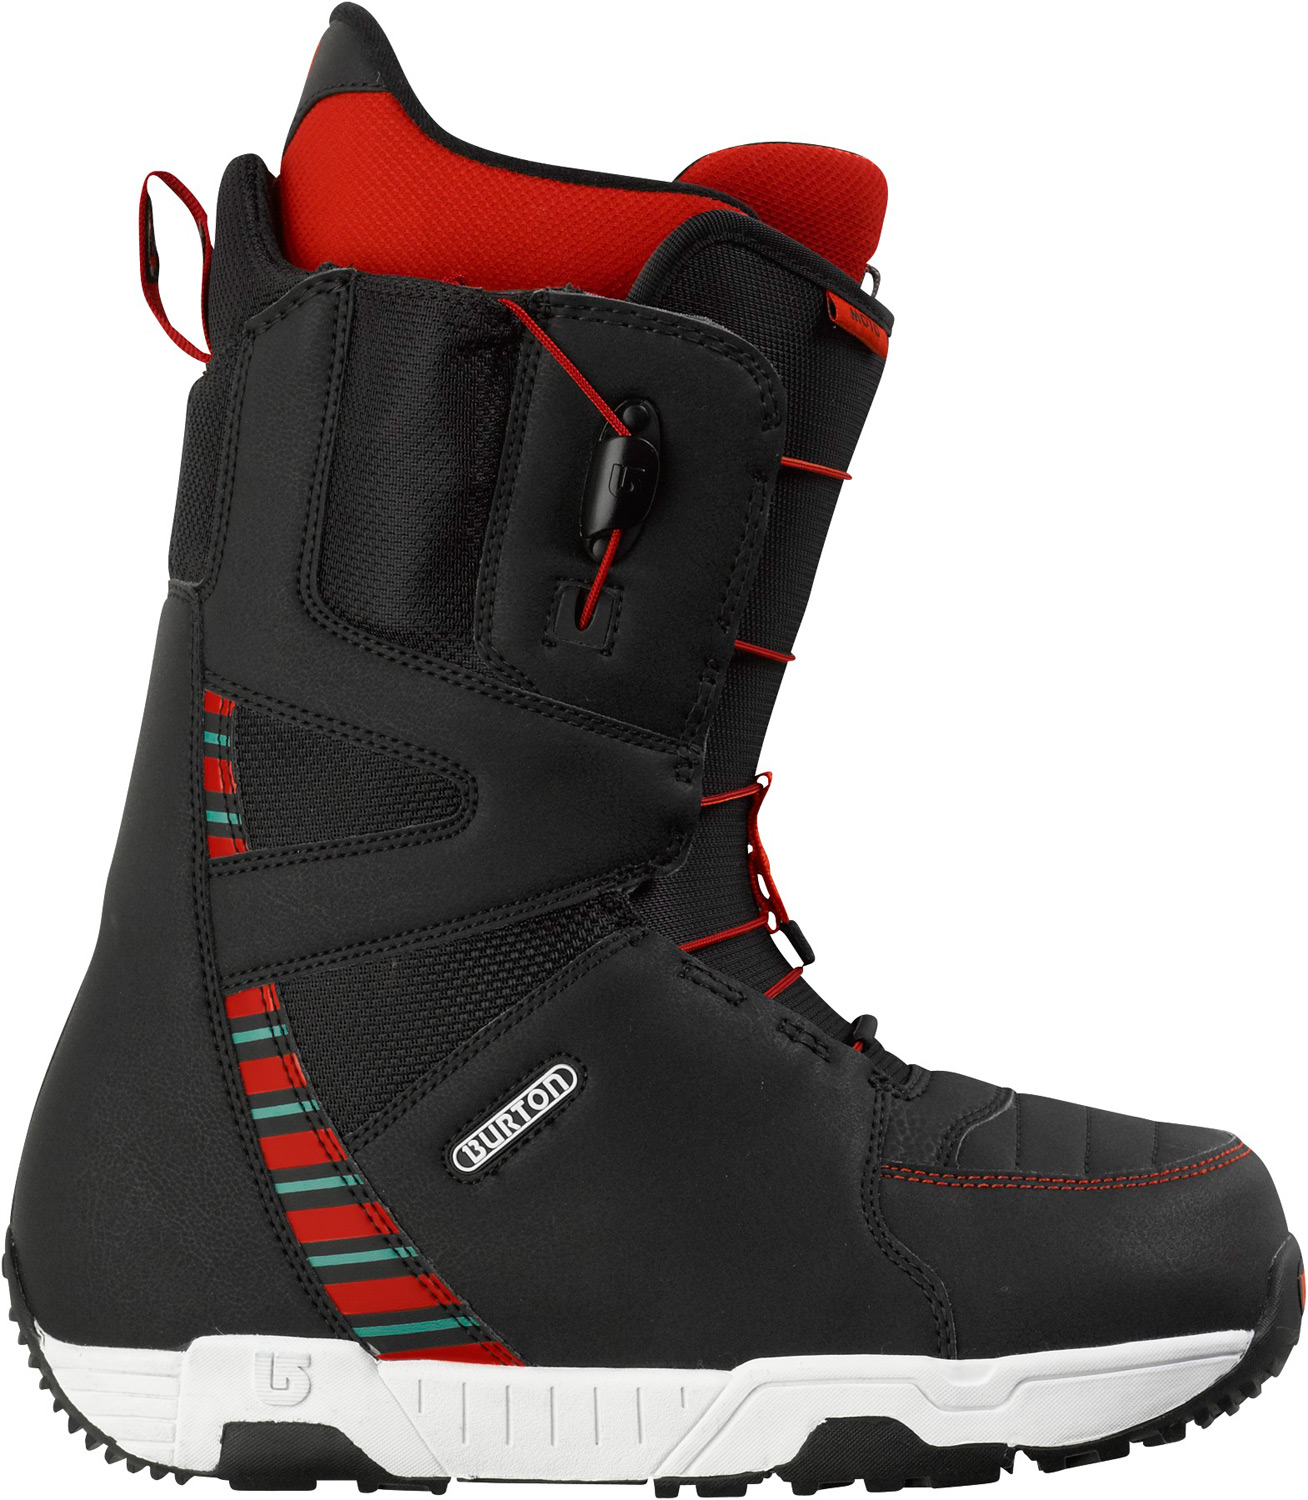 Snowboard Shred better with the world's bestseller.Key Features of the Burton Moto Snowboard Boots: Support: 3 Shrinkage™ Footprint Reduction Technology Lacing: Speed Zone™ Lacing System for True Zonal Lacing Control Liner: Imprint™ 1 Liner with Integrated Lacing Cushioning: Dual-Component Outsole with EVA Cushioning and Rubber Ice Spikes Flex and Response: Grip Fit Ribs and Soft Flex Thin Profile 3D® Molded Tongue Comfort: NEW Total Comfort Construction, Snow-Proof Internal Gusset, and Level 1 Molded EVA Footbed The World's Bestselling Snowboard Boot Eleven Years Running - $119.95